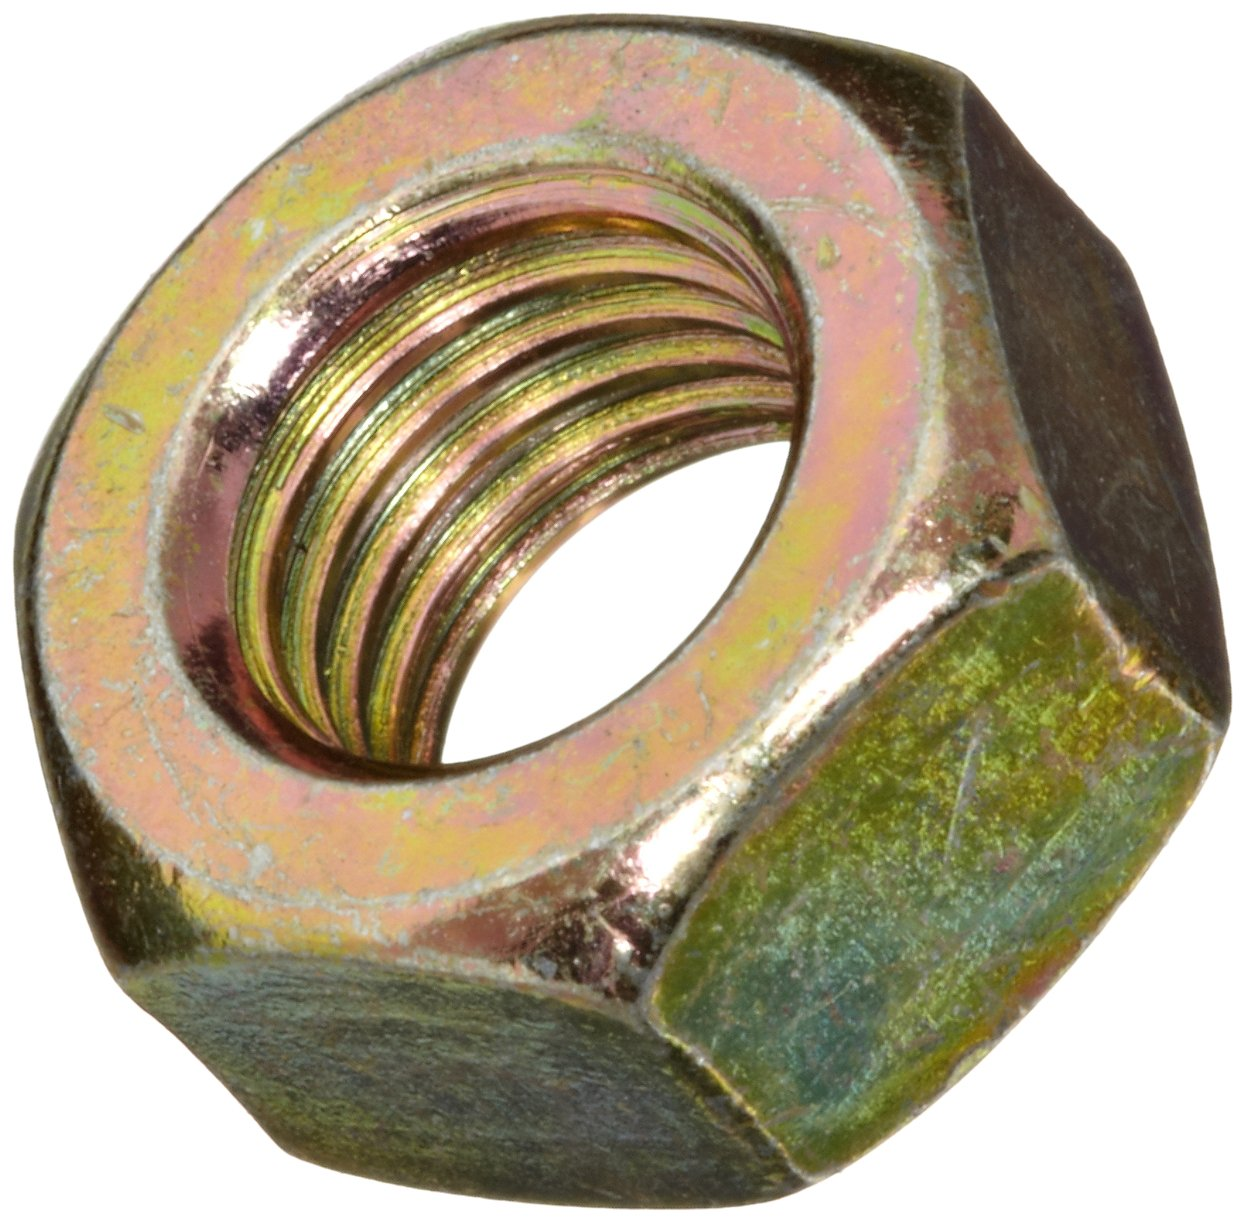 Metric Plain Finish Brass Hex Nut 11 mm Width Across Flats DIN 934 5.5 mm Thick Pack of 25 M7-1 Thread Size